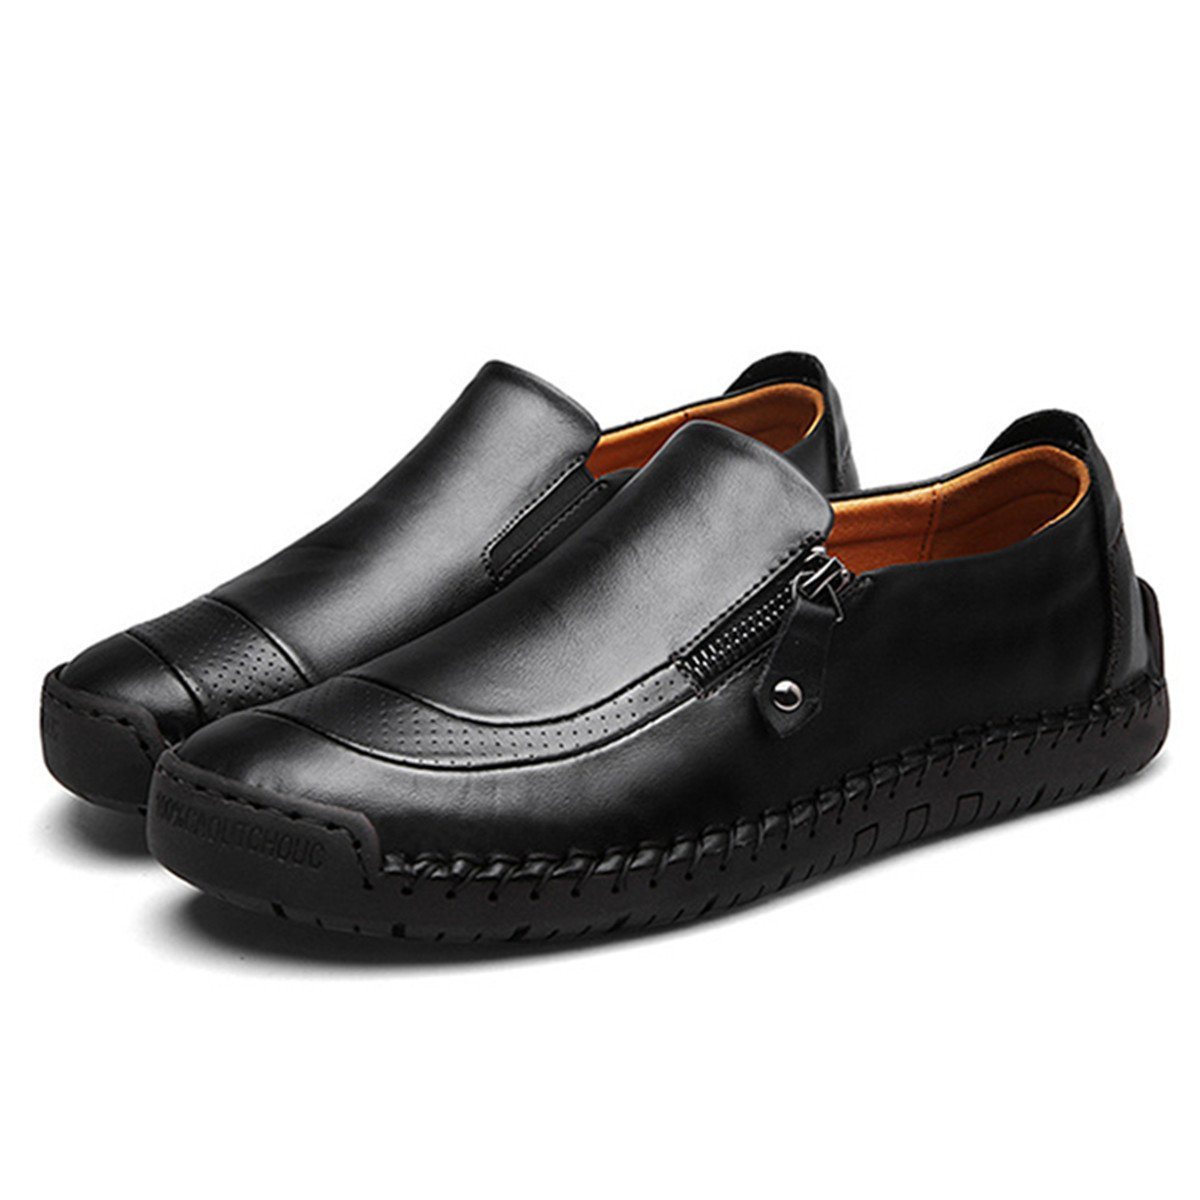 8d5d52a259cde Amazon.com | gracosy Slip-On Shoes, Men's Leather Hand Stitching Zipper  Non-Slip Oxford Casual Leather Loafers Driving Walking Shoes | Loafers &  Slip-Ons